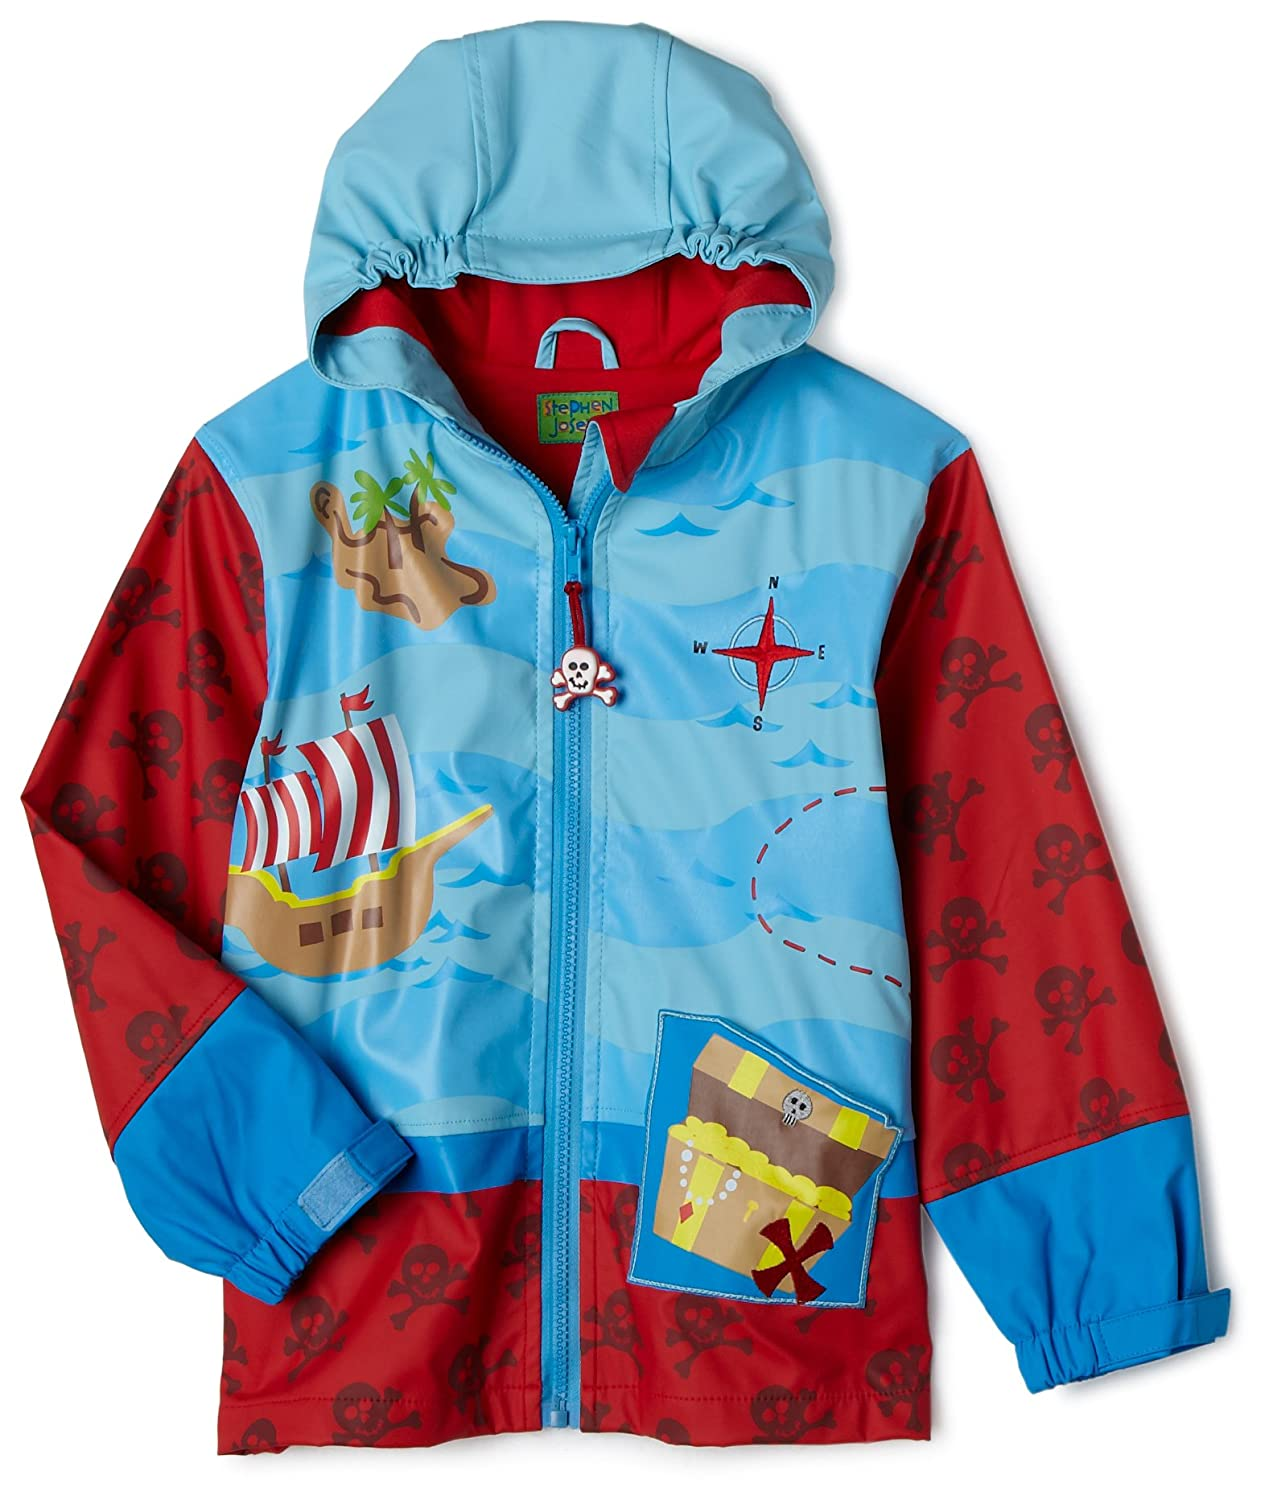 Little Boys' Frog Coat and Umbrella Rain Set Customer Ratings